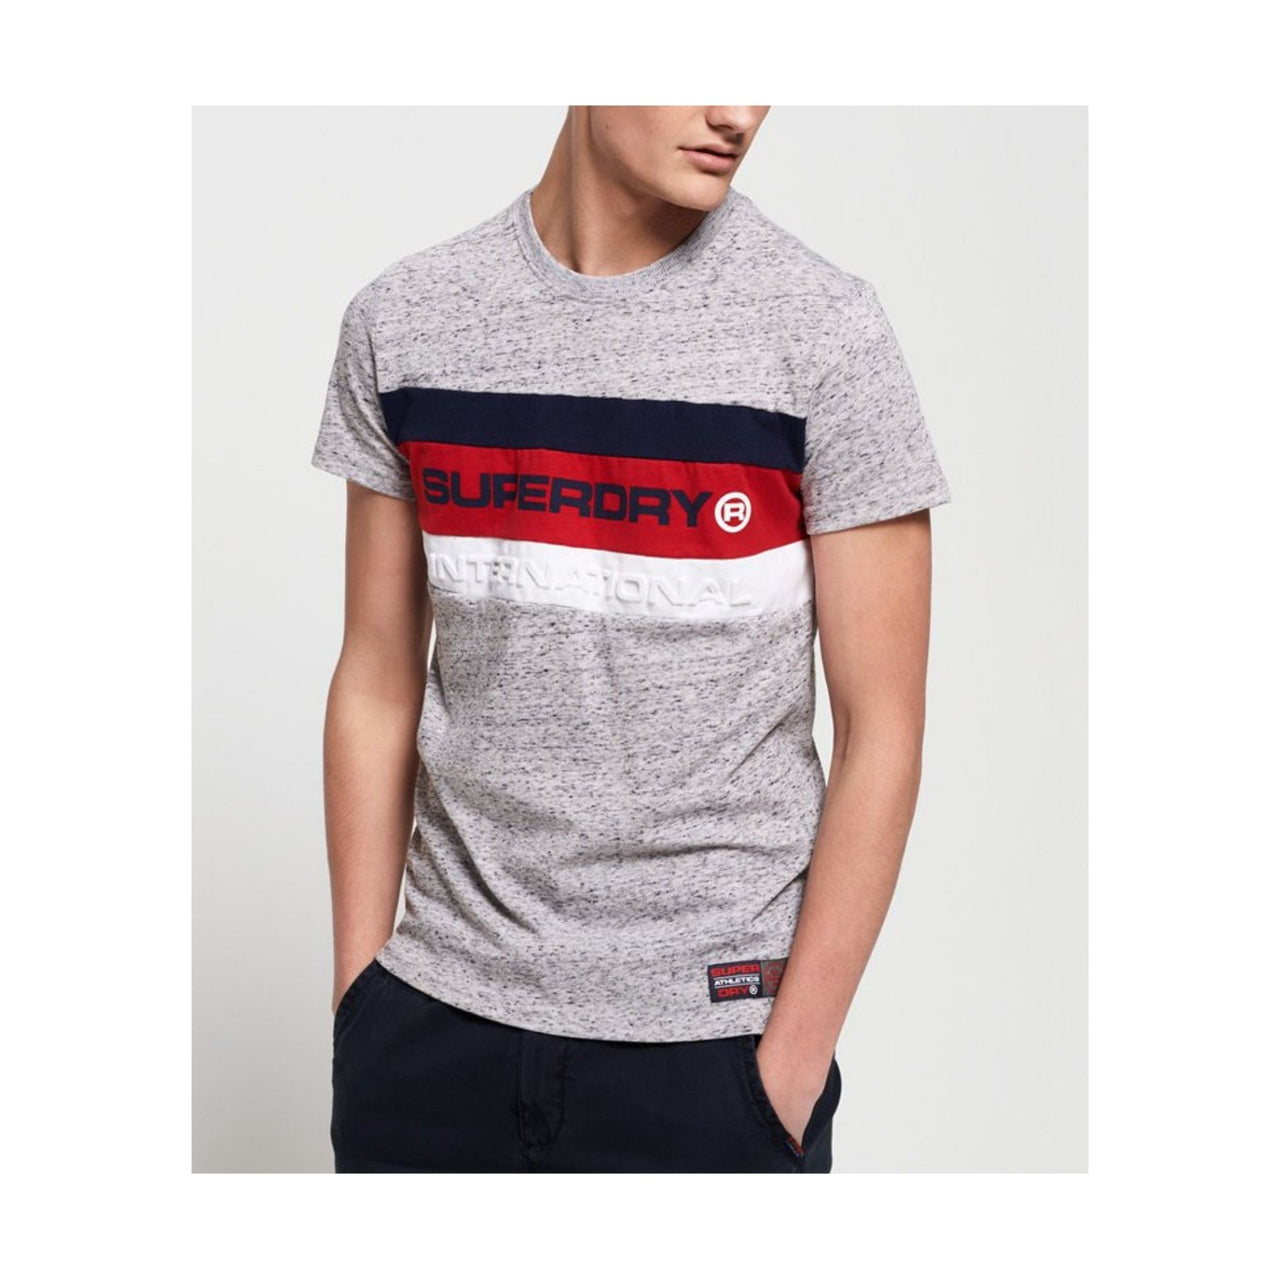 Superdry-Trophy-Tshirt-grey-Marl